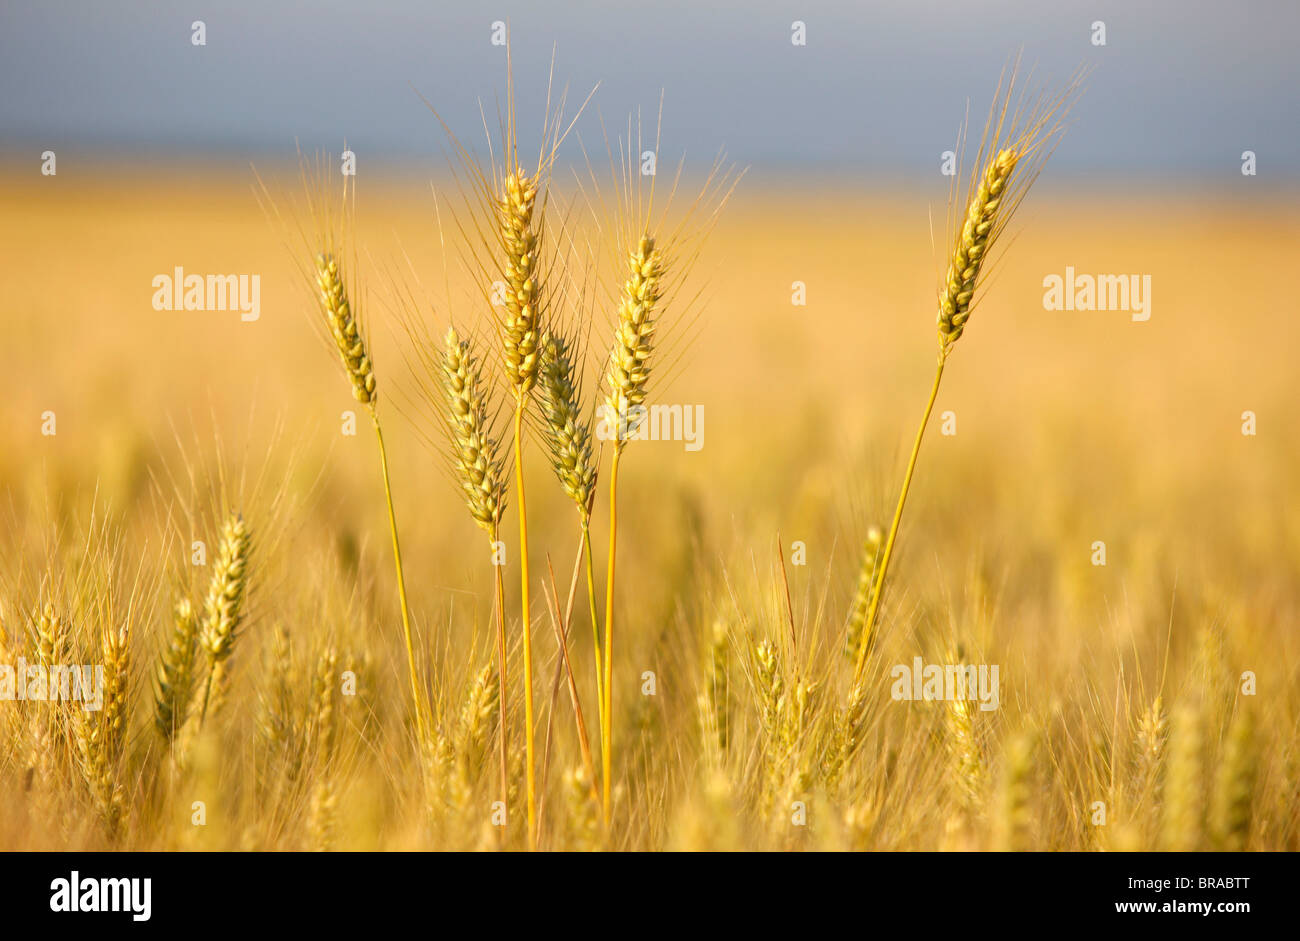 Wheat field, Eure, France, Europe - Stock Image